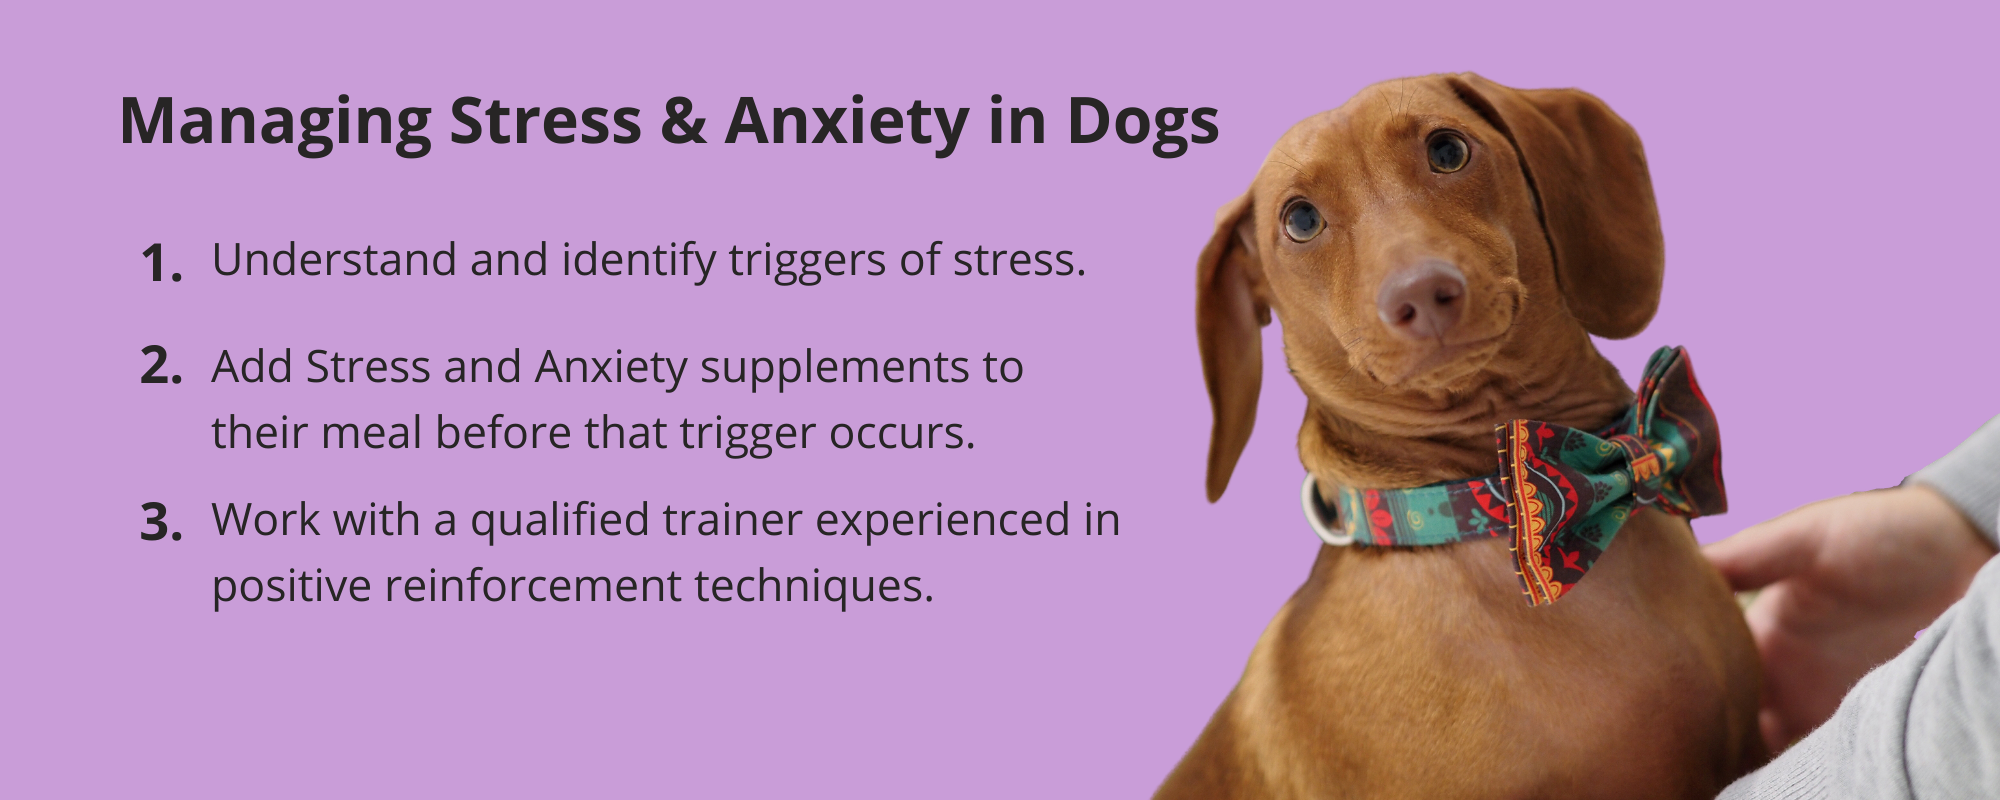 Three steps to help your dog break the cycle of stress and anxiety